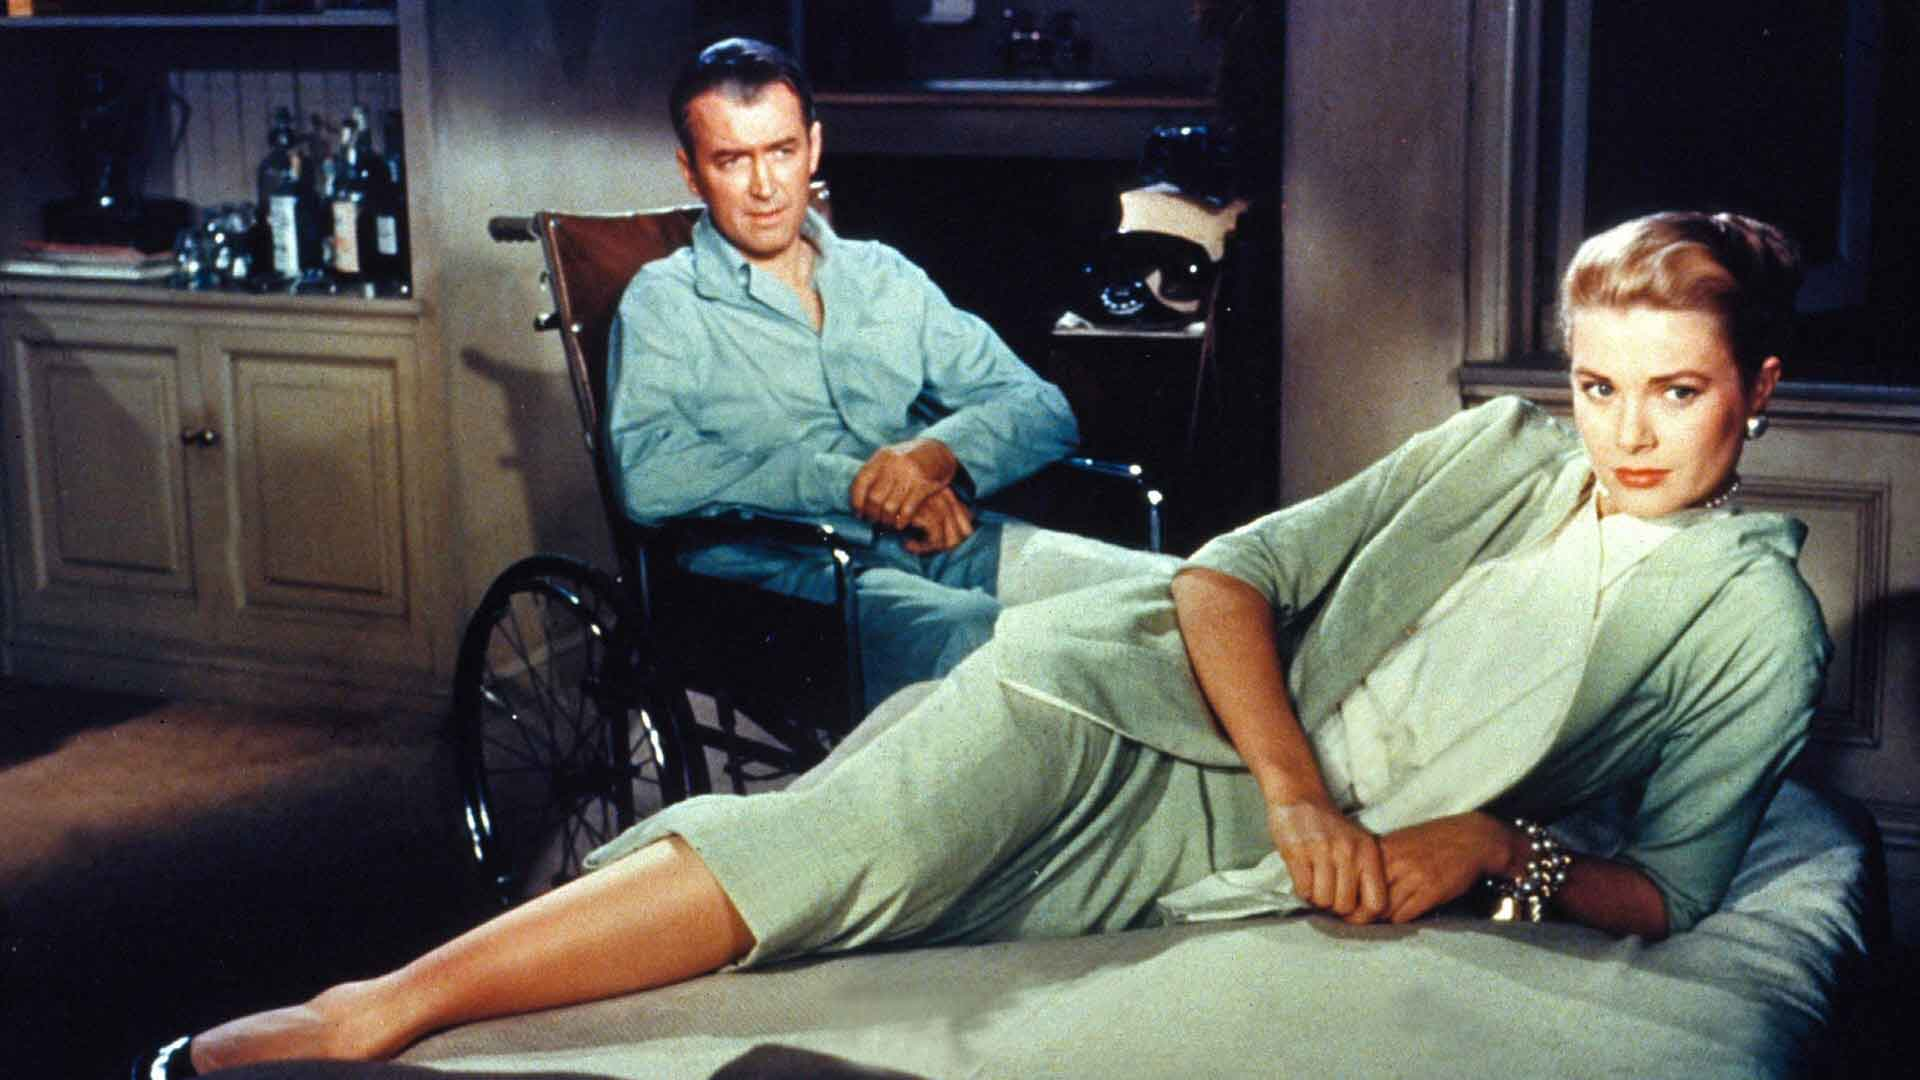 edith-head-rear-window-green-suit-worn-by-grace-kelly